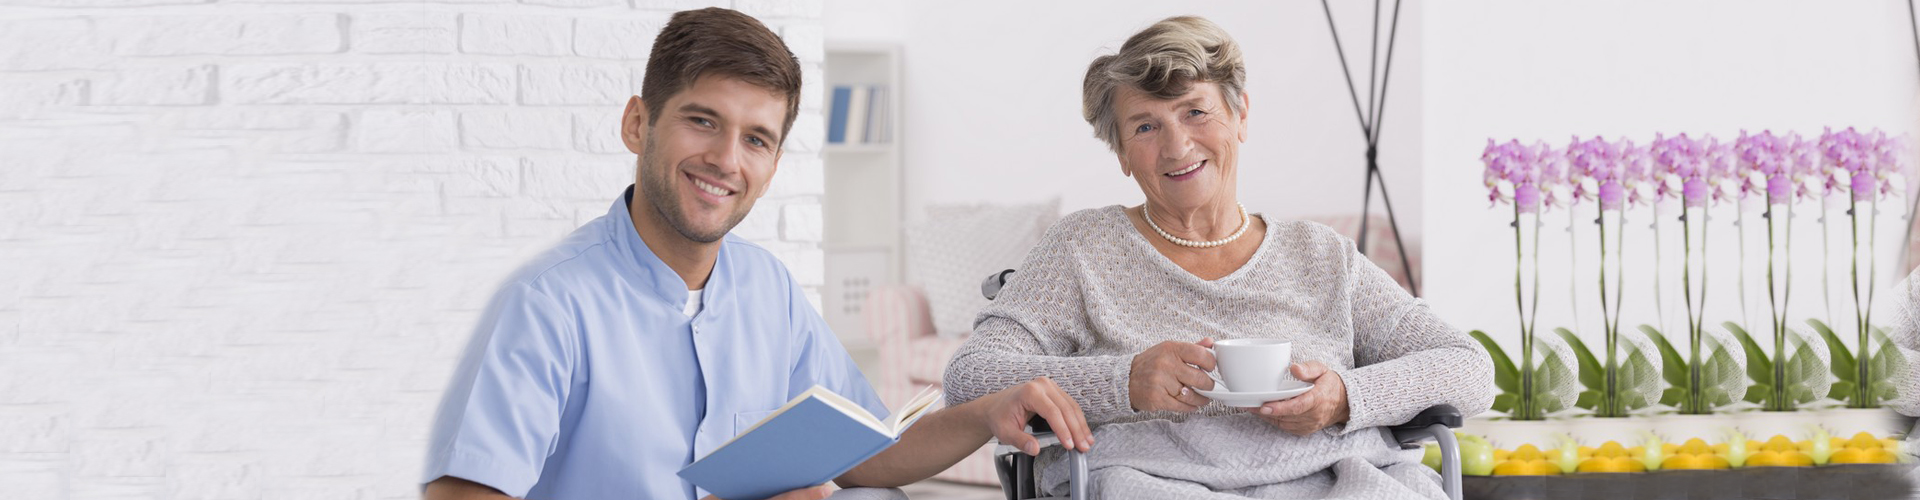 adult woman with caregiver